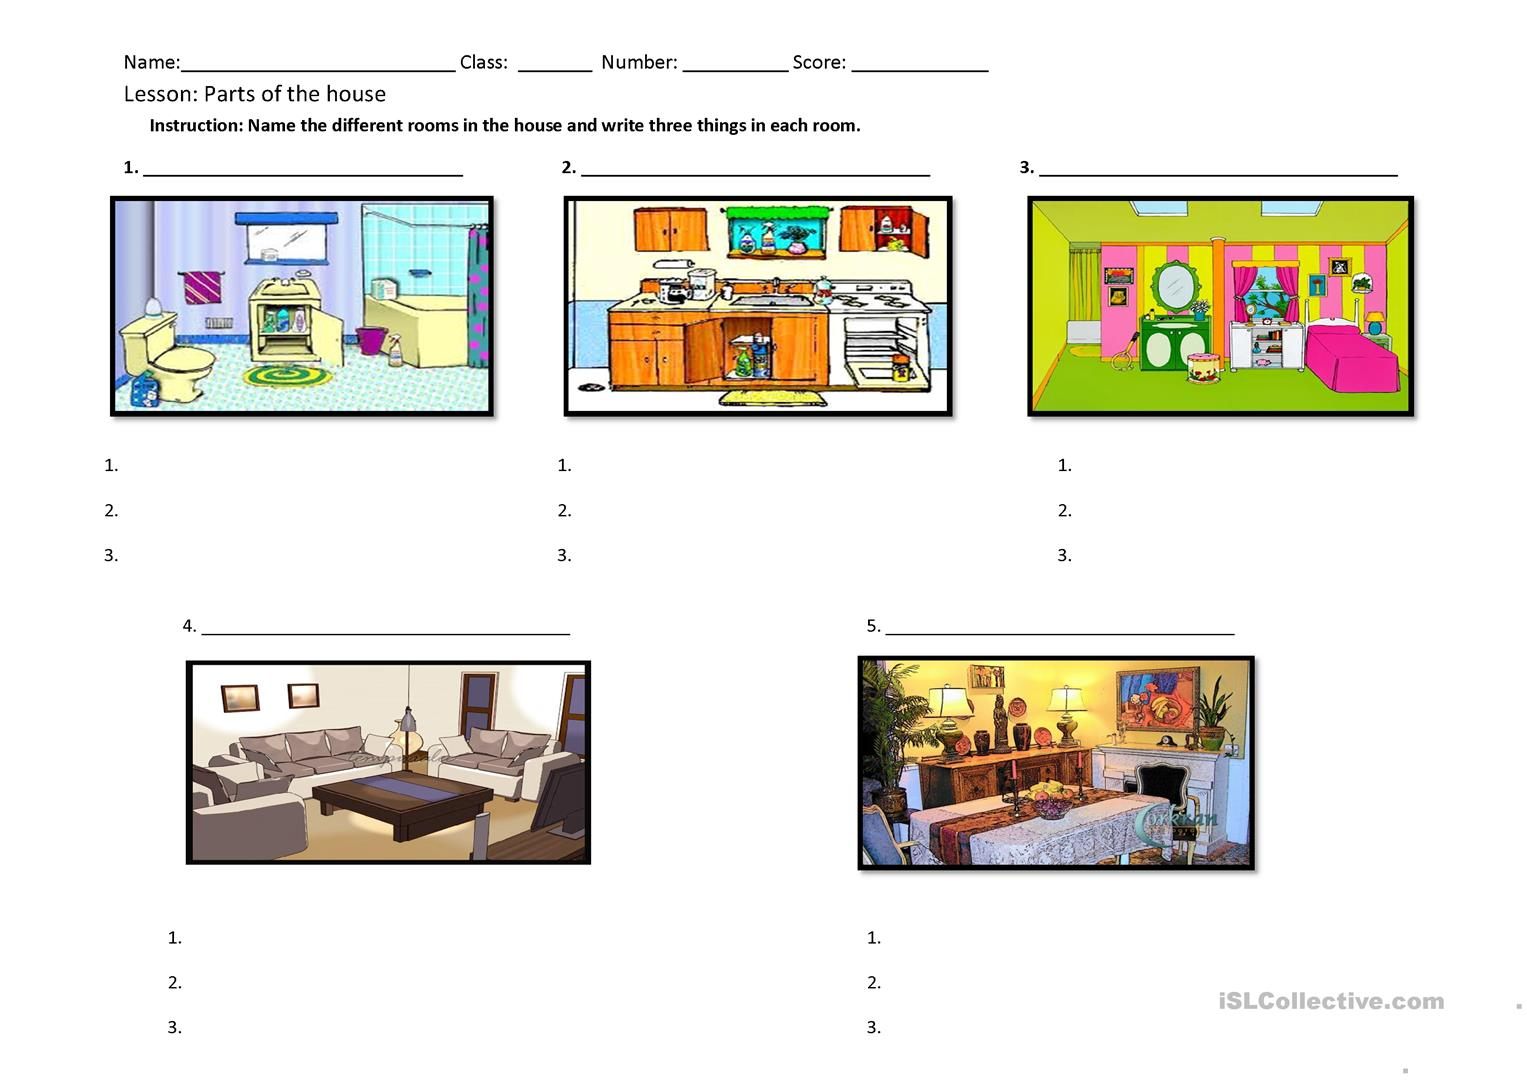 Rooms And Things In The House Worksheet